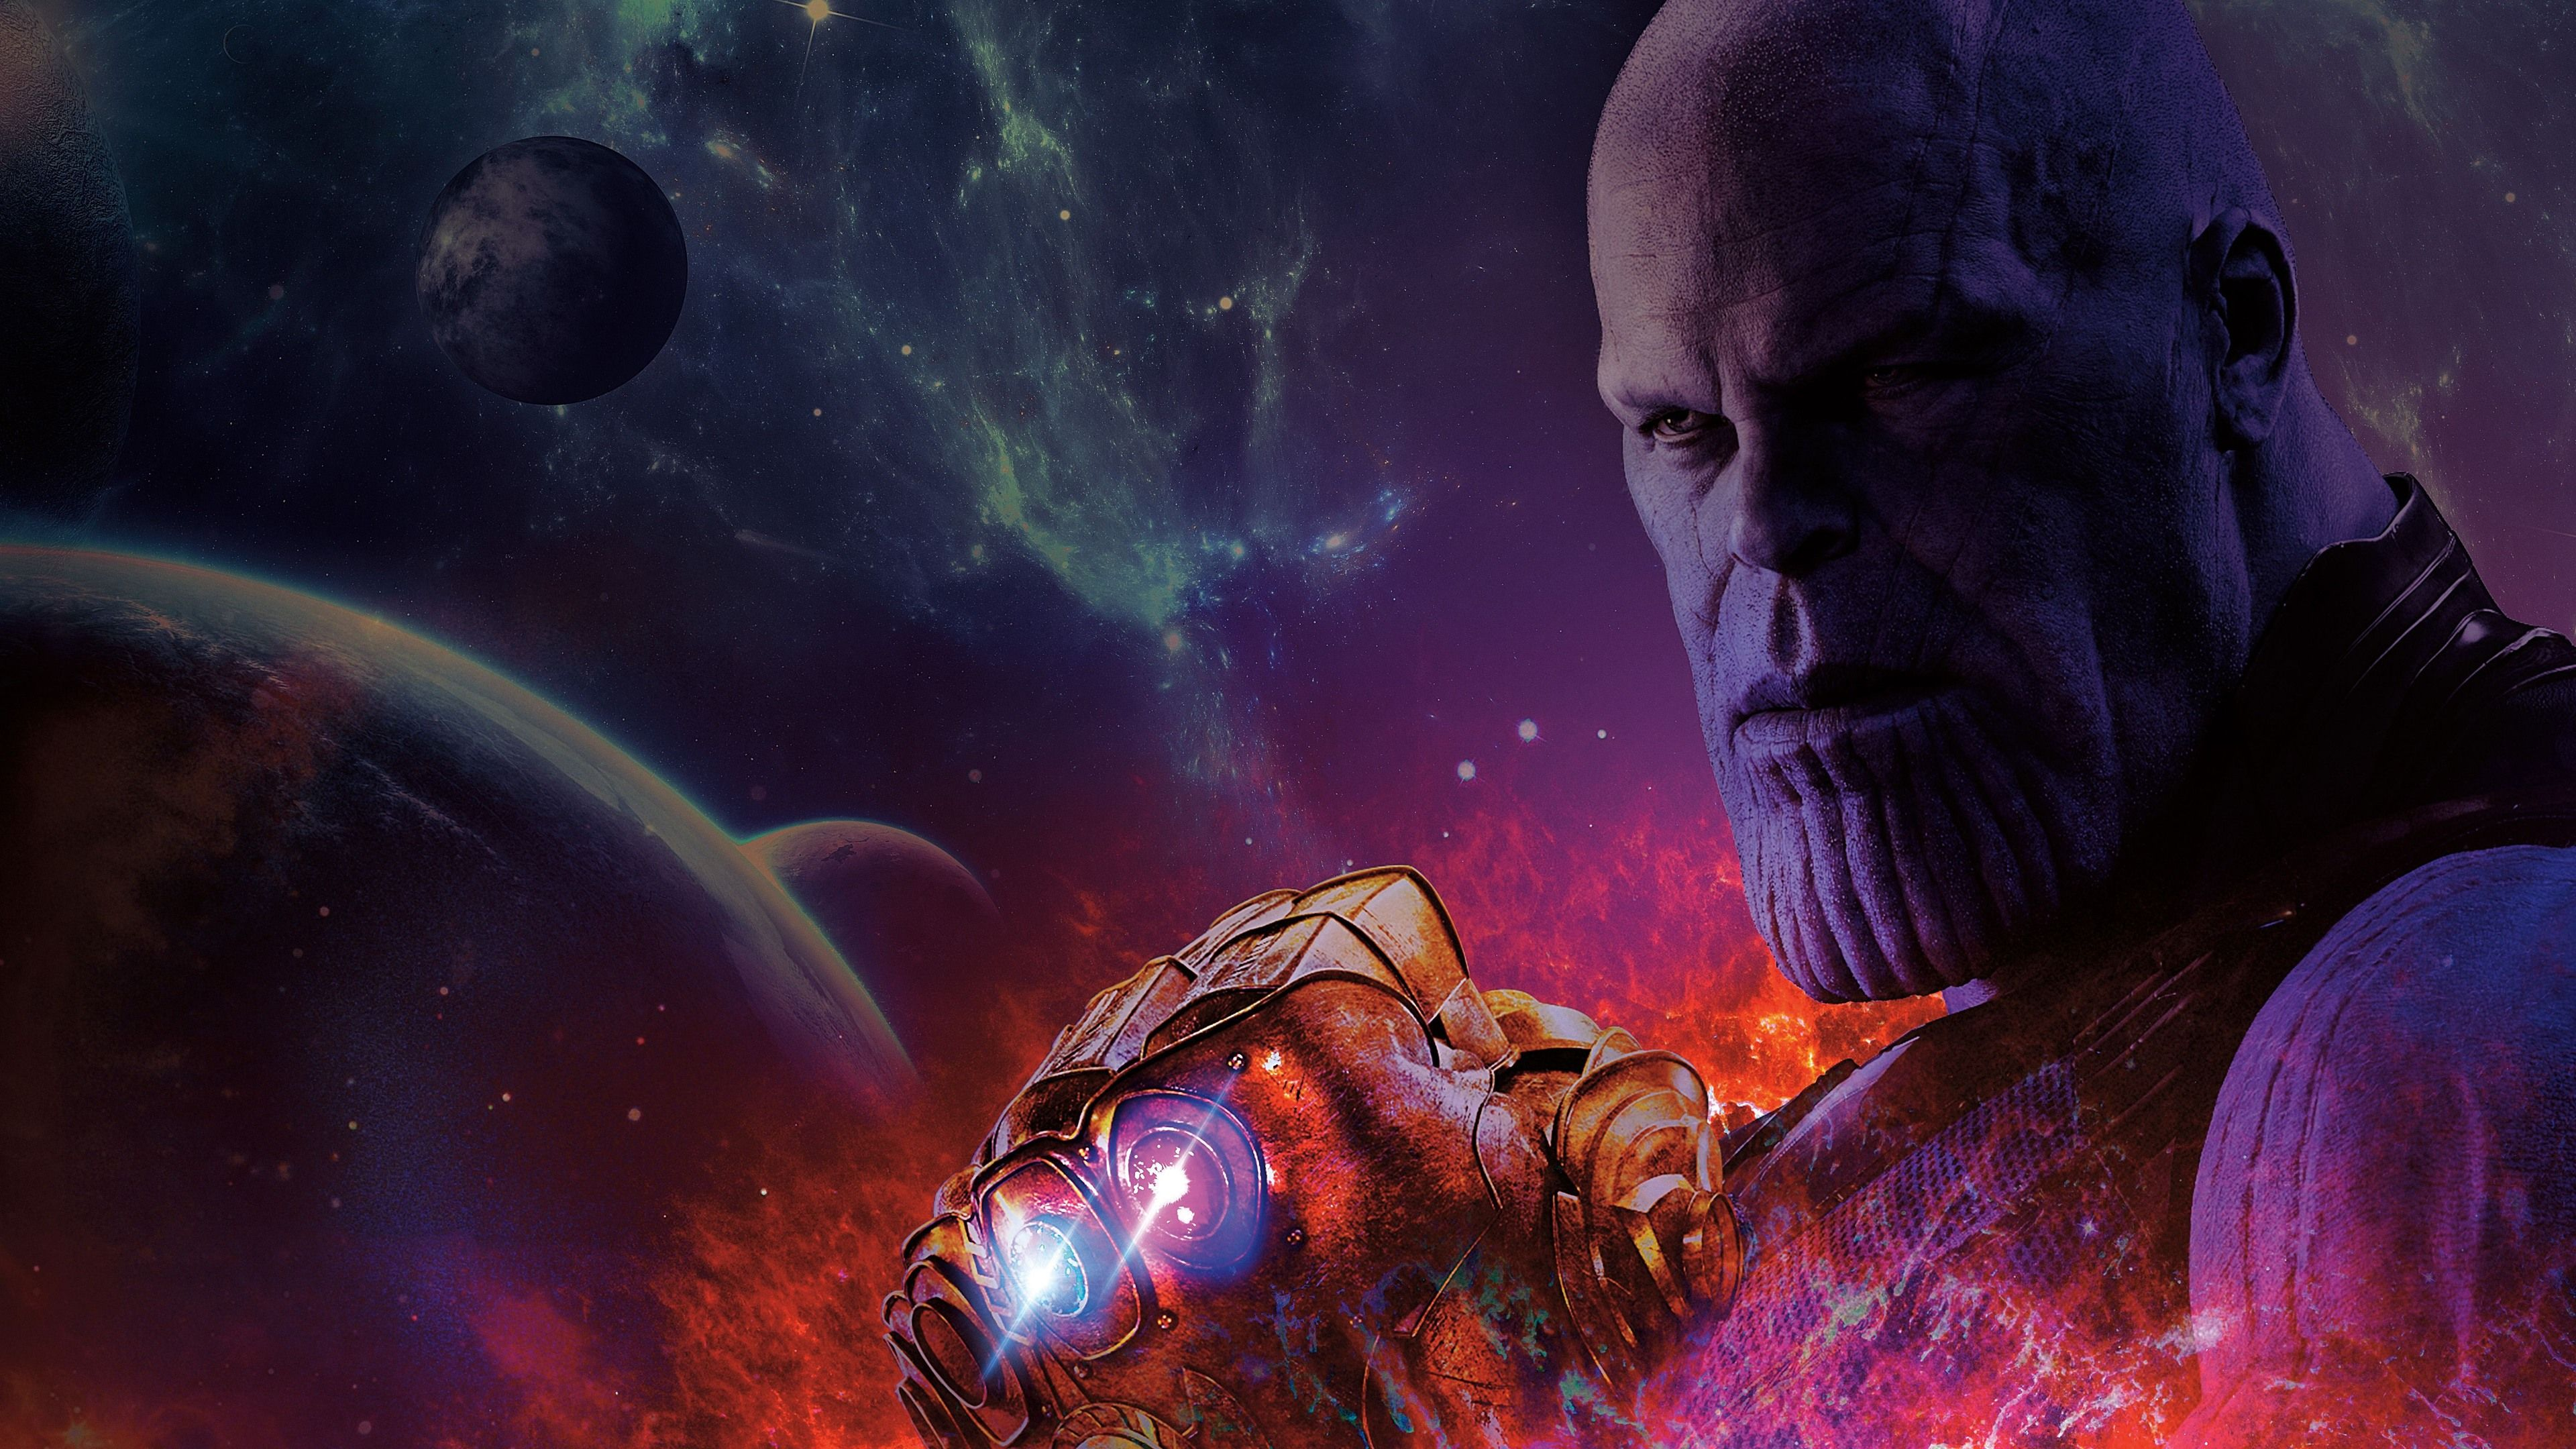 Avengers 4 End Game Thanos 4k Avengers 4 Thanos Hd 4k Wallpapers Avengers Pictures Avengers Wallpaper Movie Wallpapers